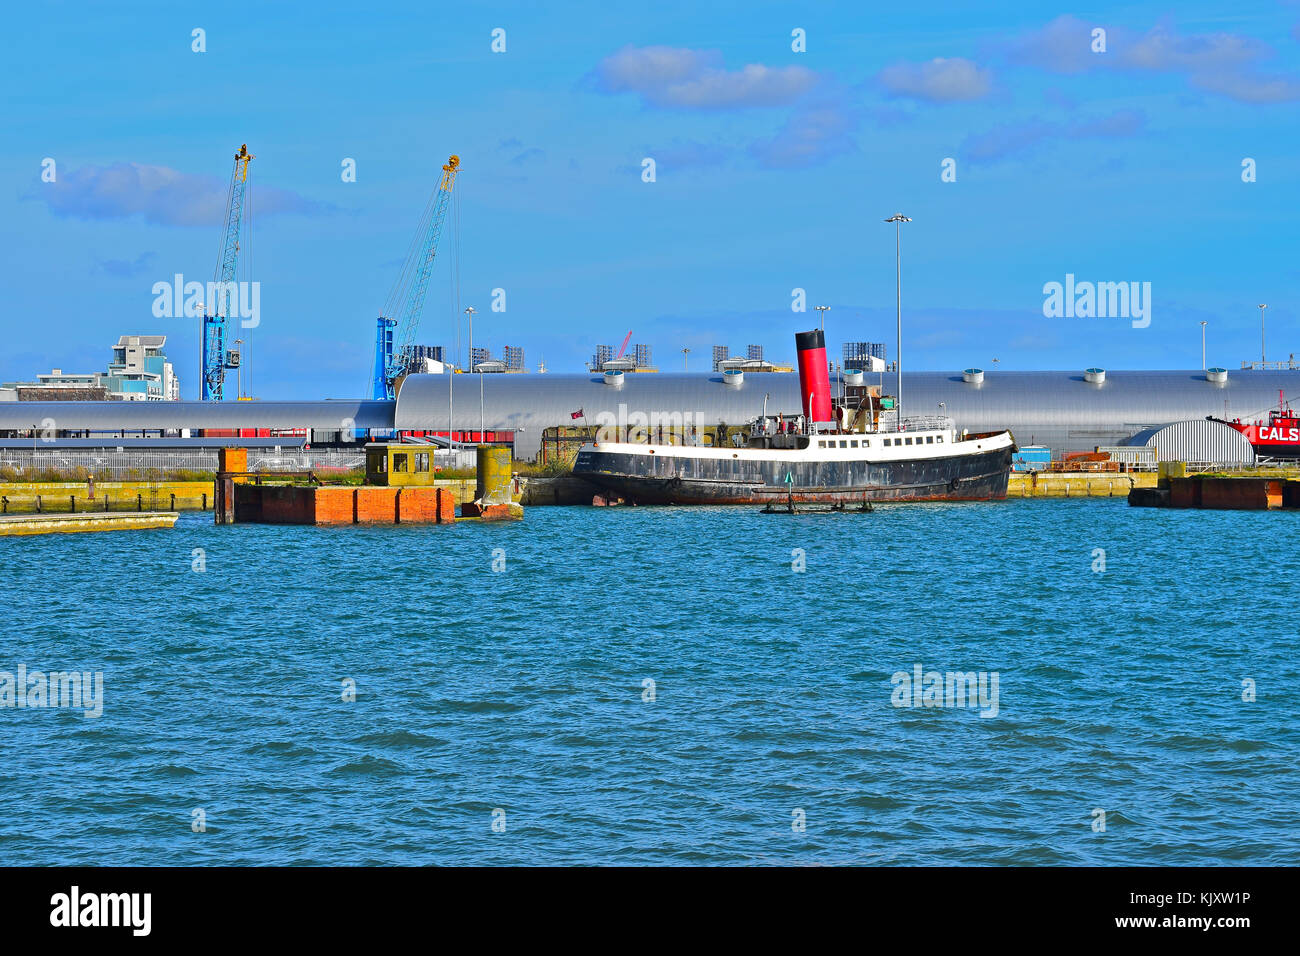 Old Calshot Tugboat (launched in 1929) moored adjacent to Ocean Terminal Southampton. Formerly  tug & tender - Stock Image